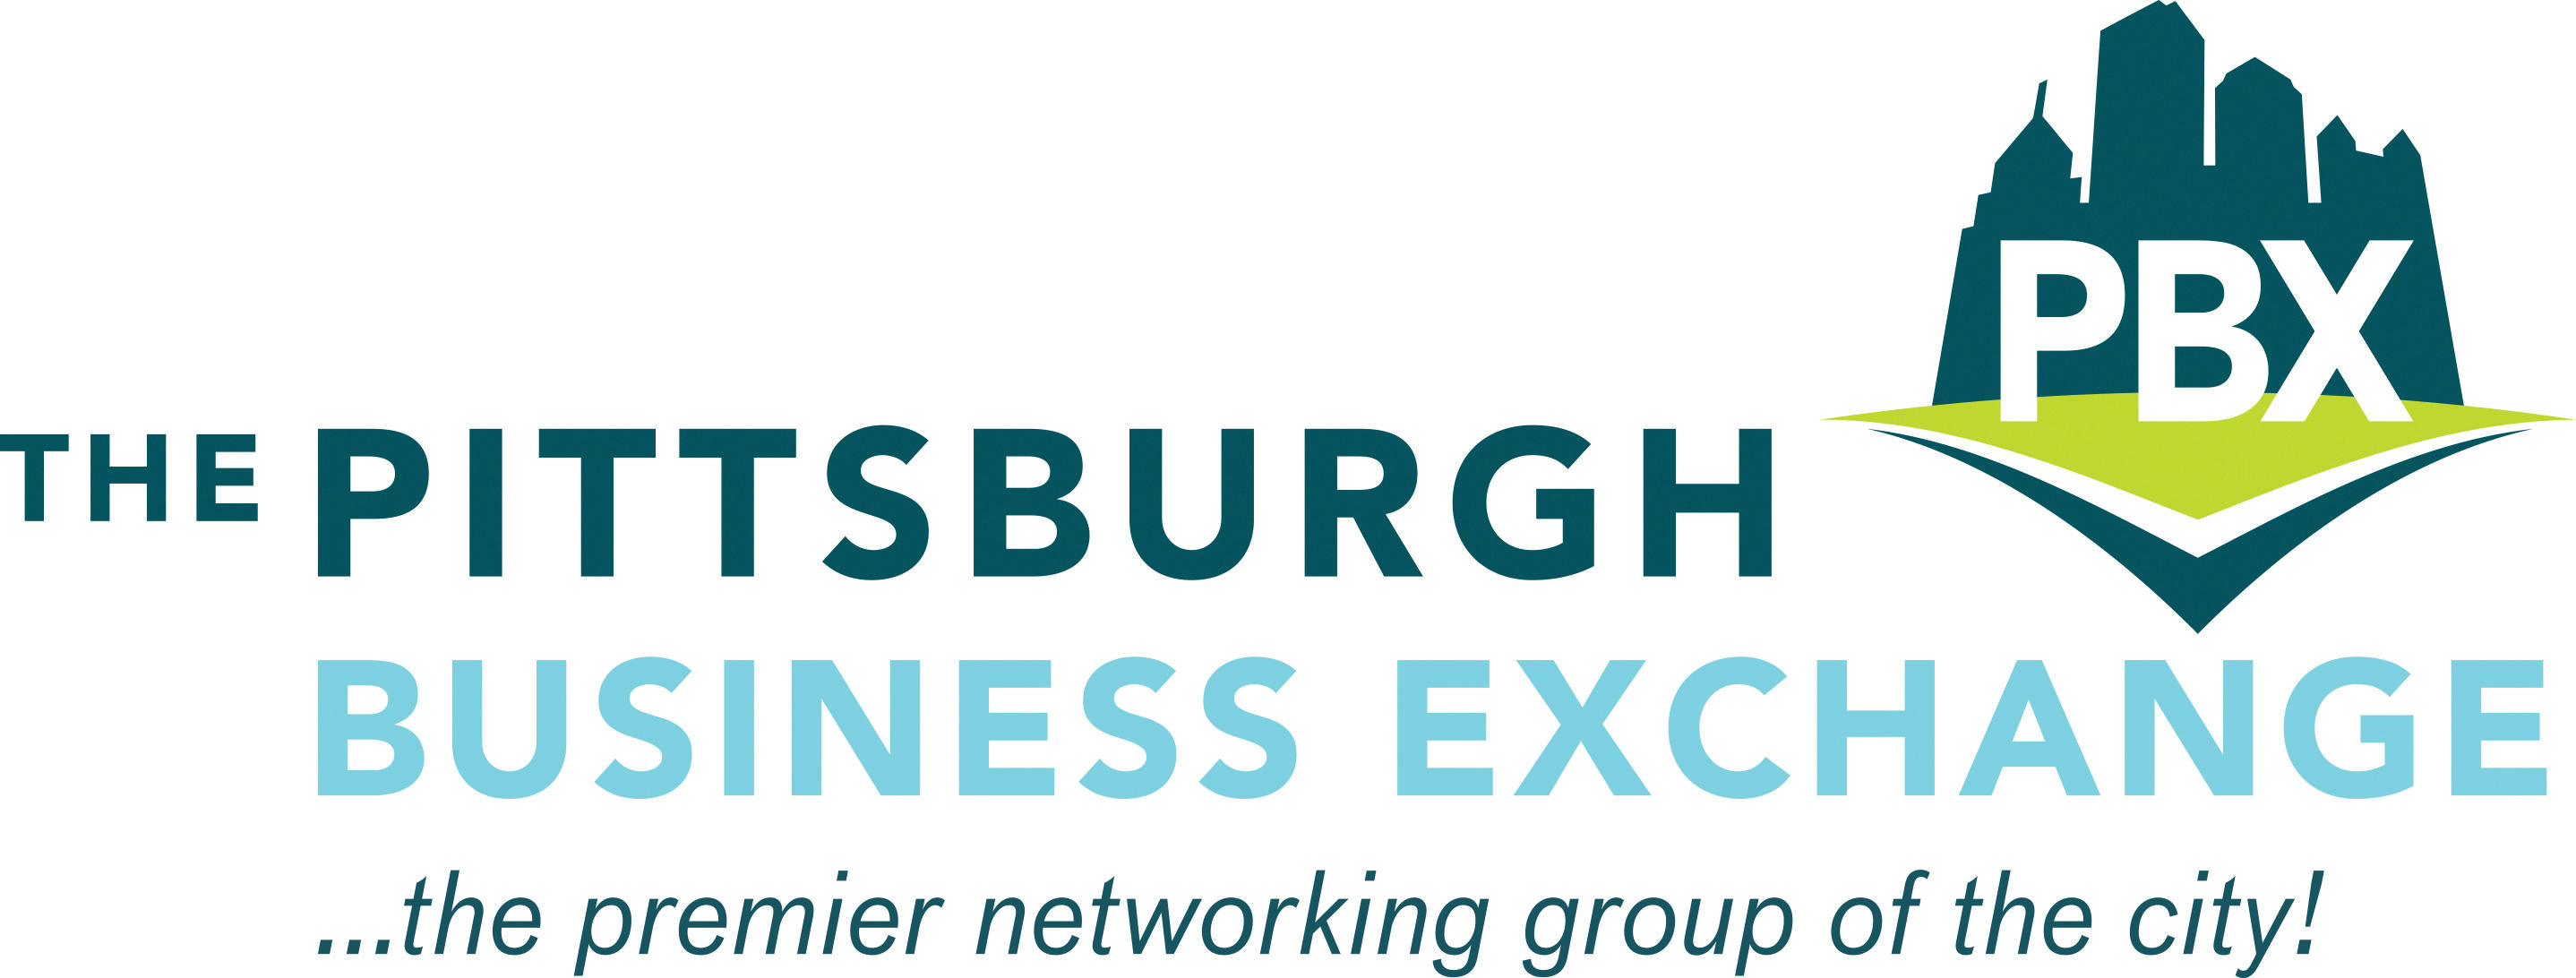 The Pittsburgh Business Exchange image 4